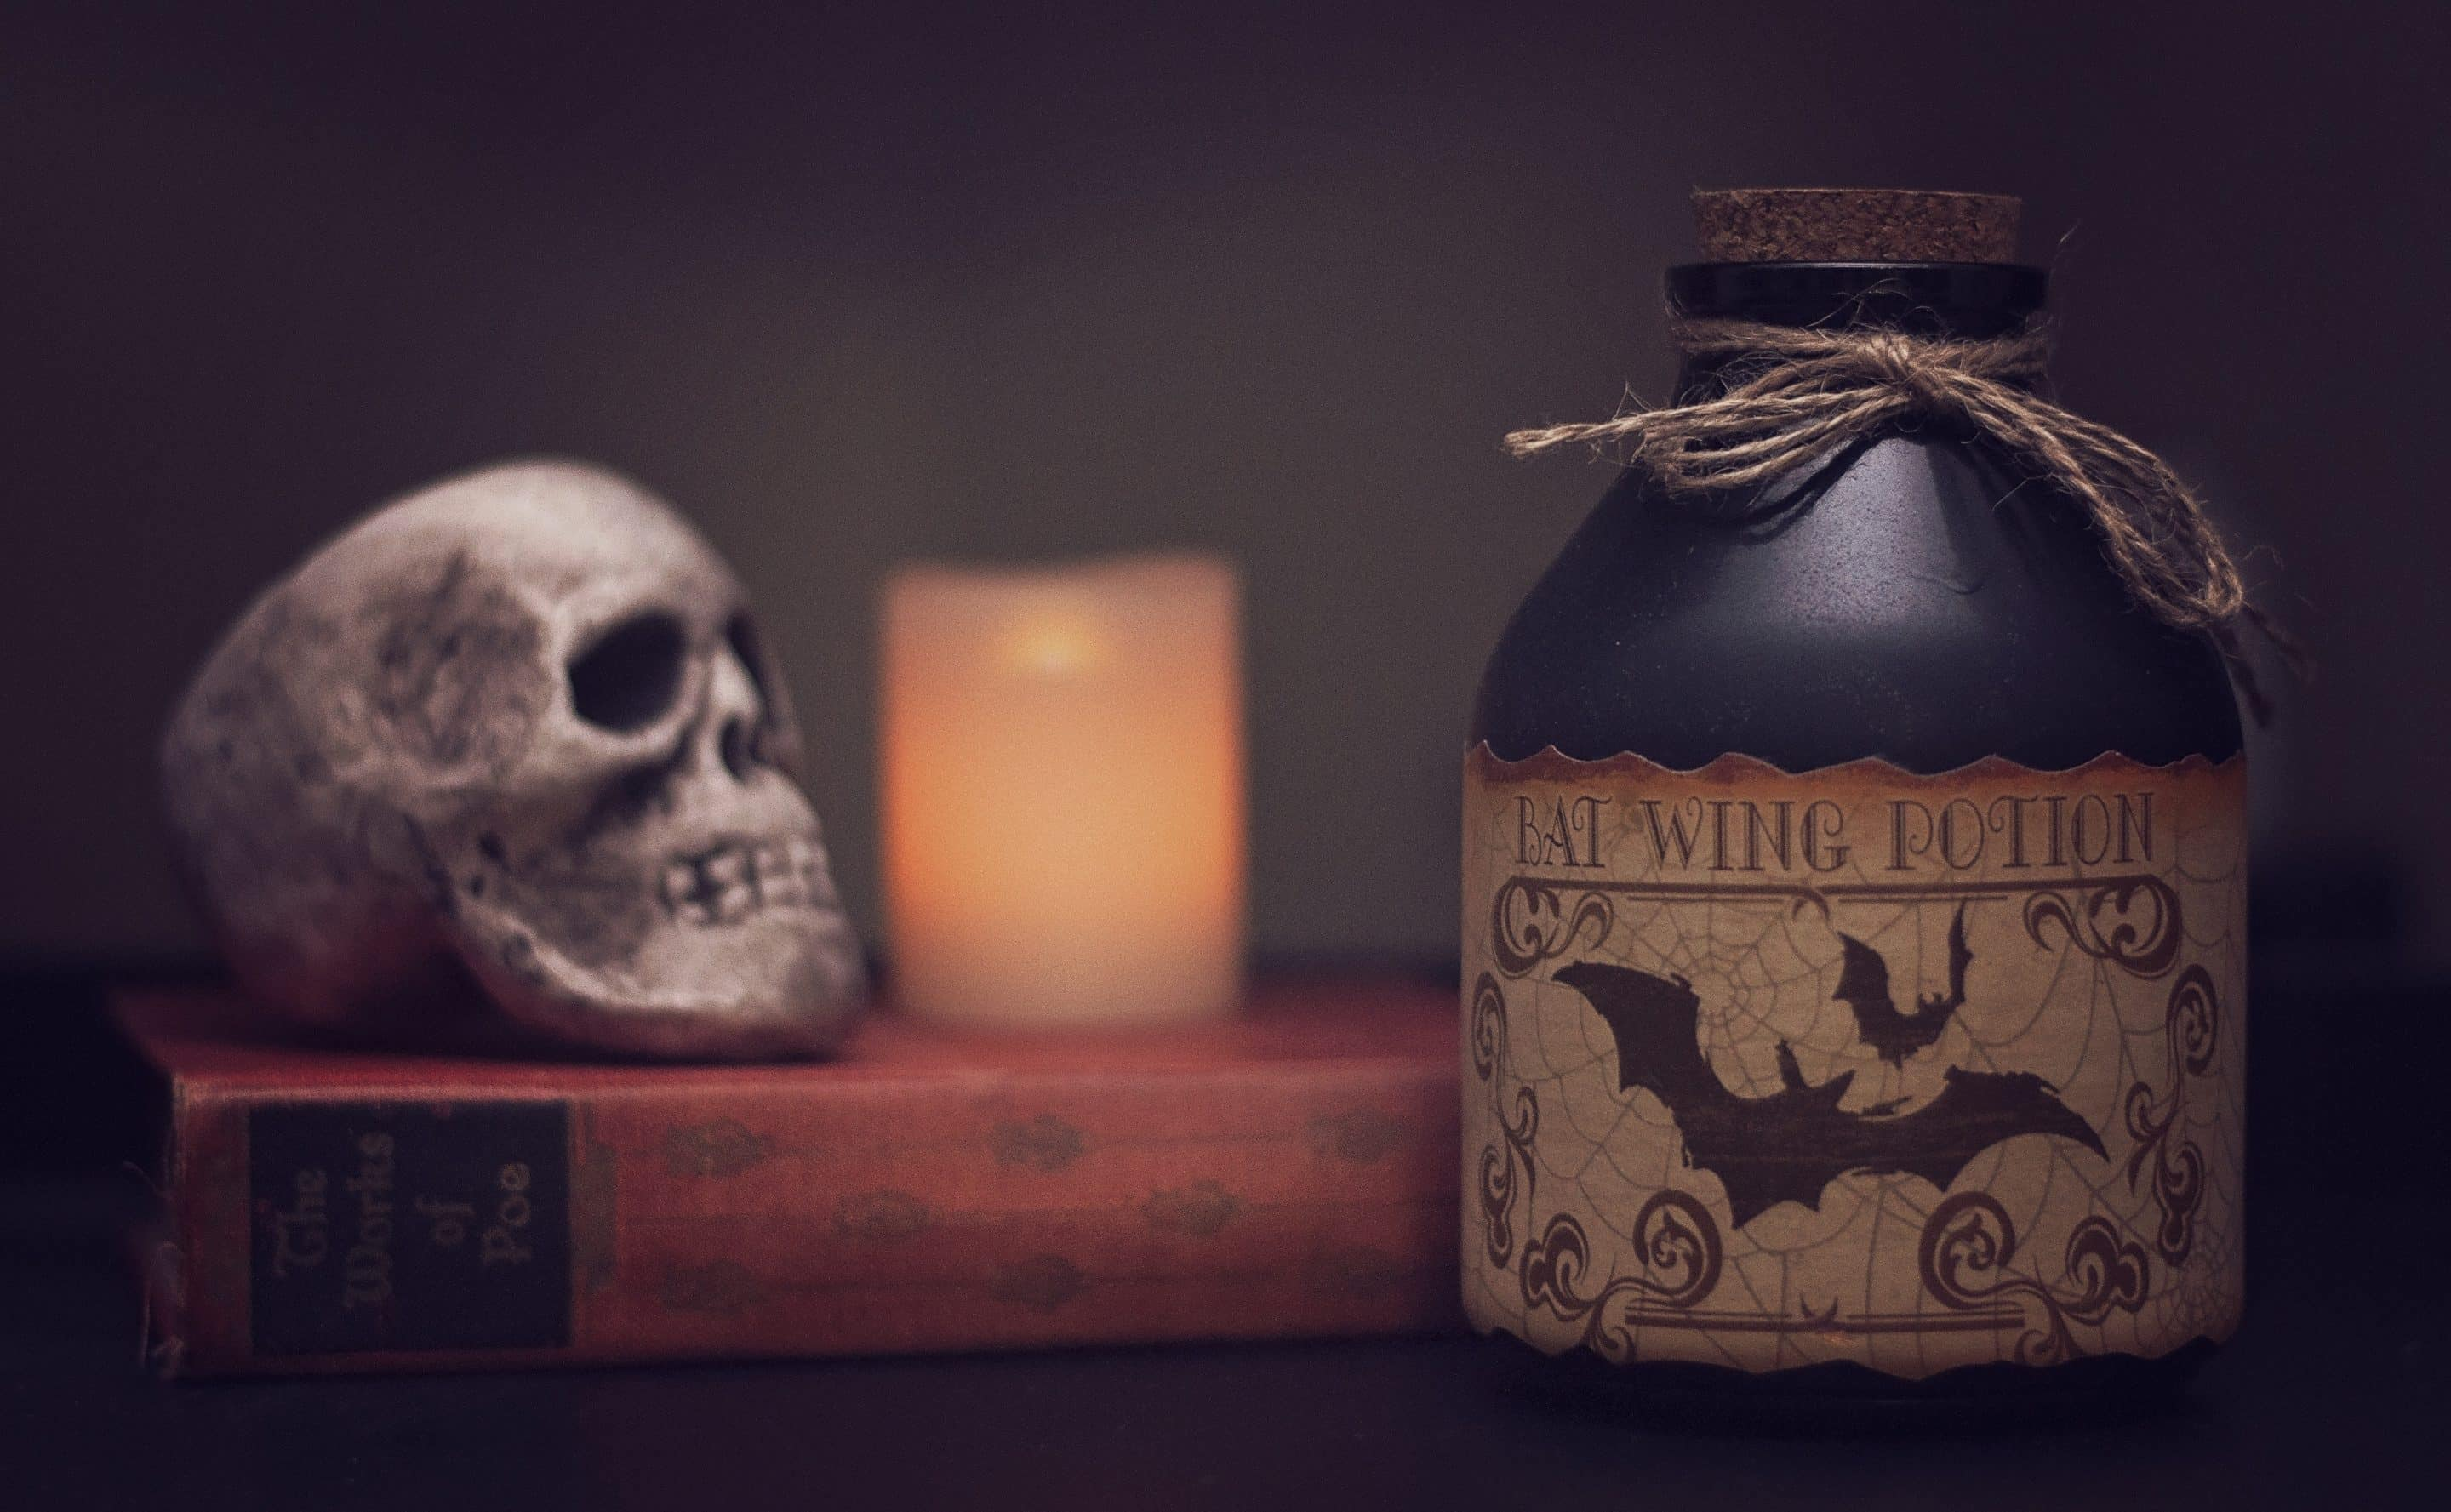 Spooky skull and poison Halloween Decorations for Home Office